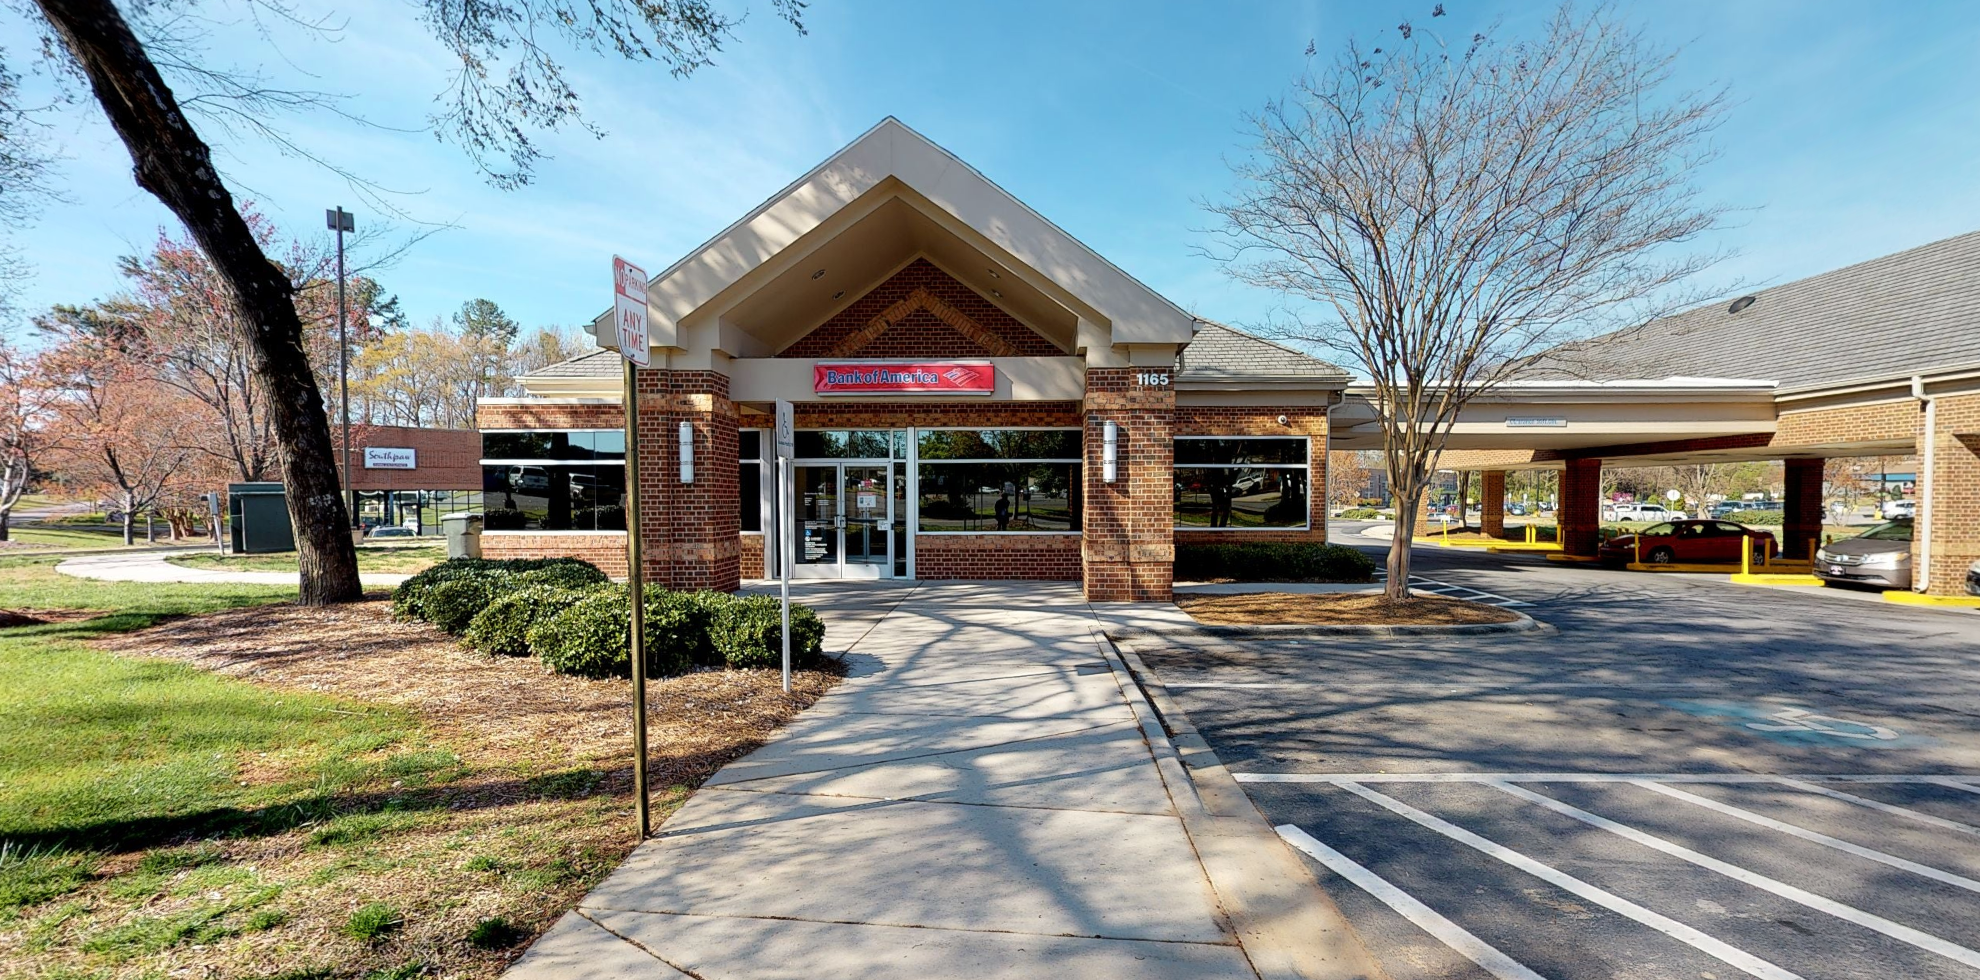 Bank of America financial center with drive-thru ATM   1165 Cherry Rd, Rock Hill, SC 29732